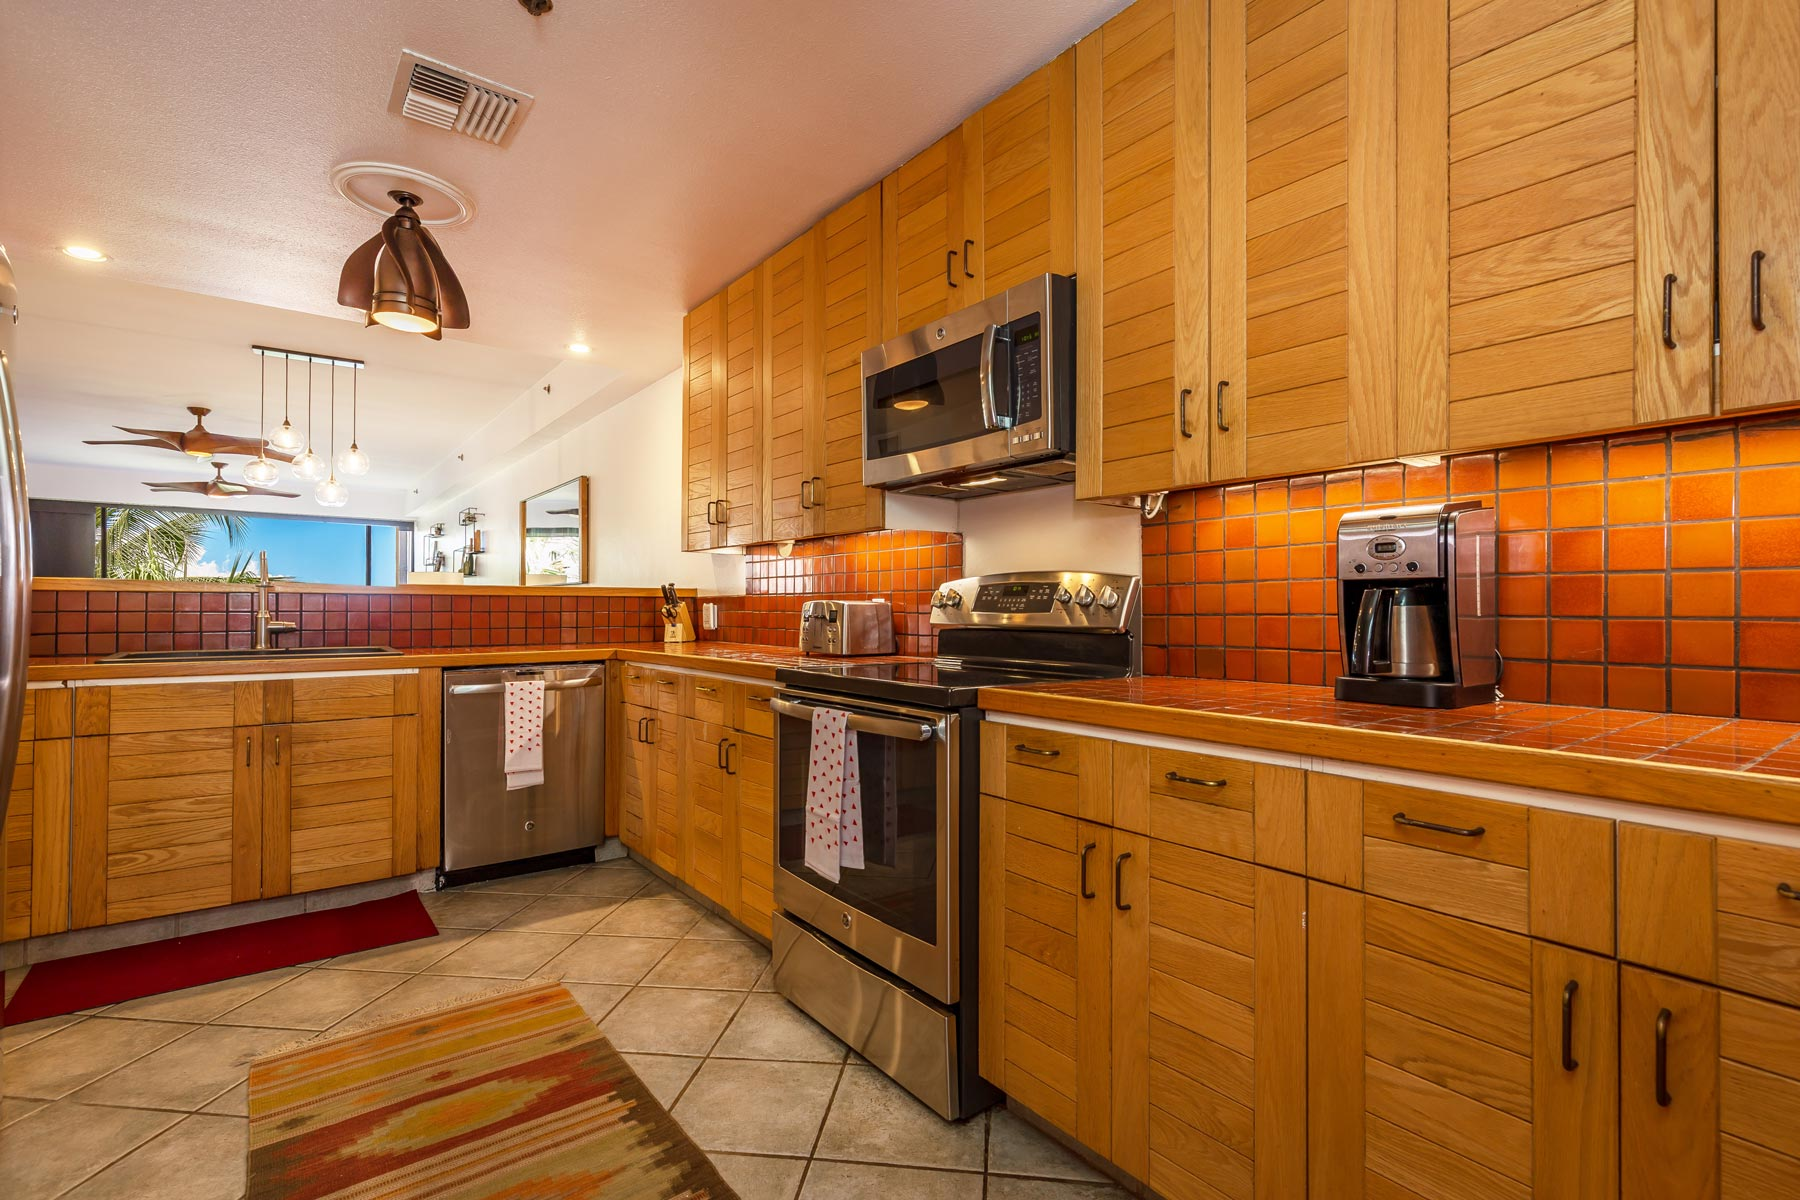 maui hotels with kitchens unclog kitchen drain hotel rooms kitchenette  wow blog